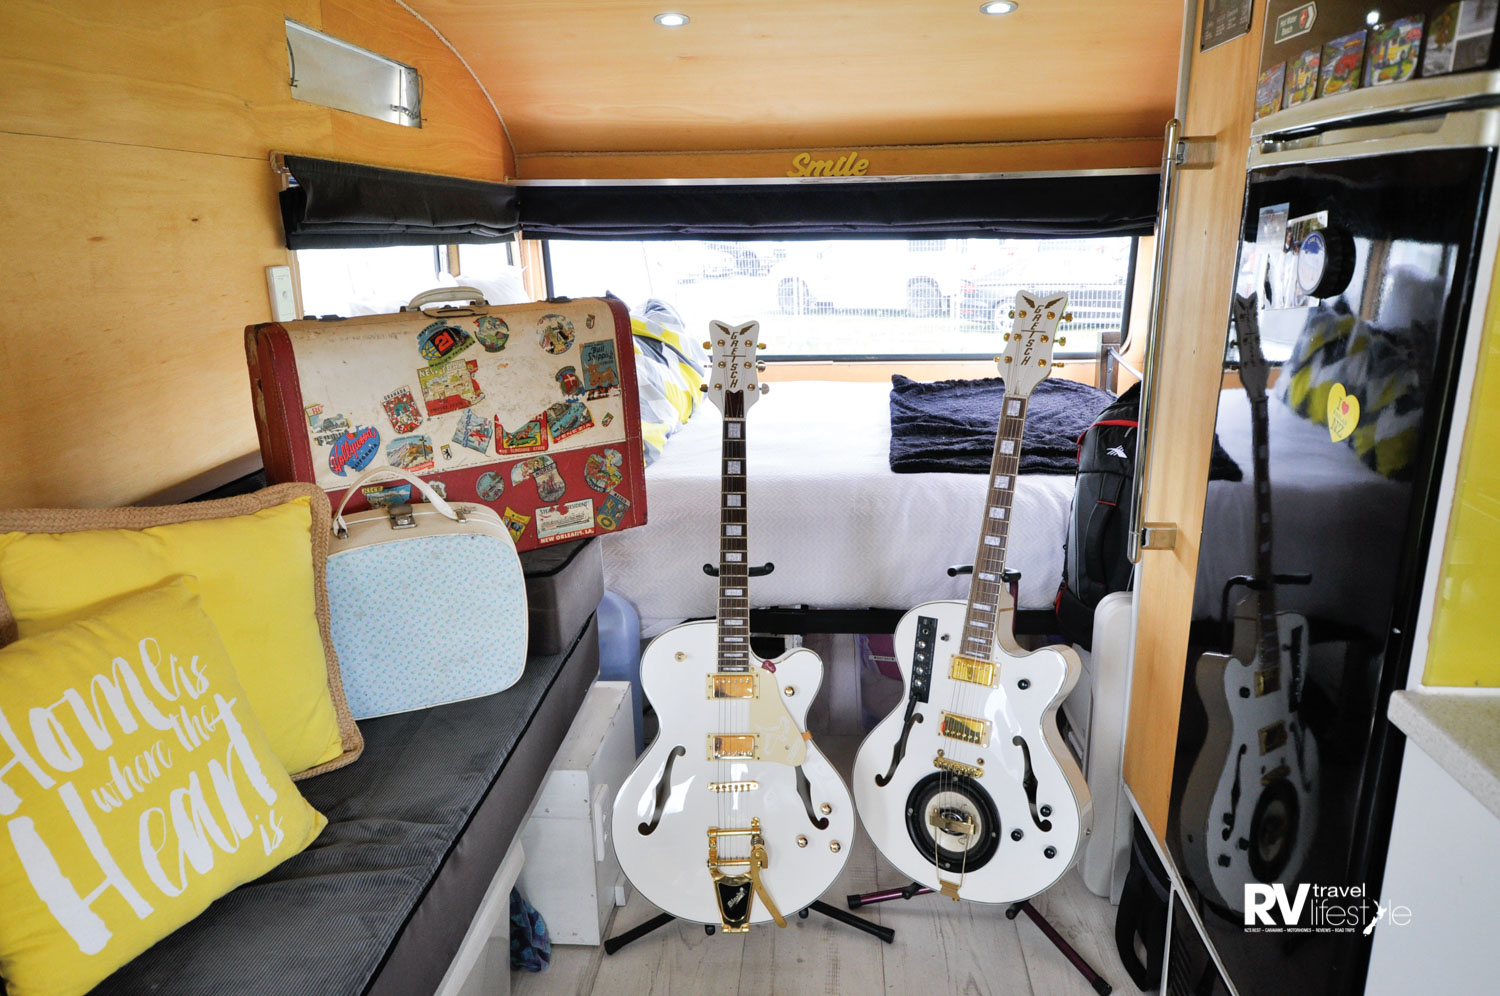 Jemoal's guitar's take pride of place in the sunny interior